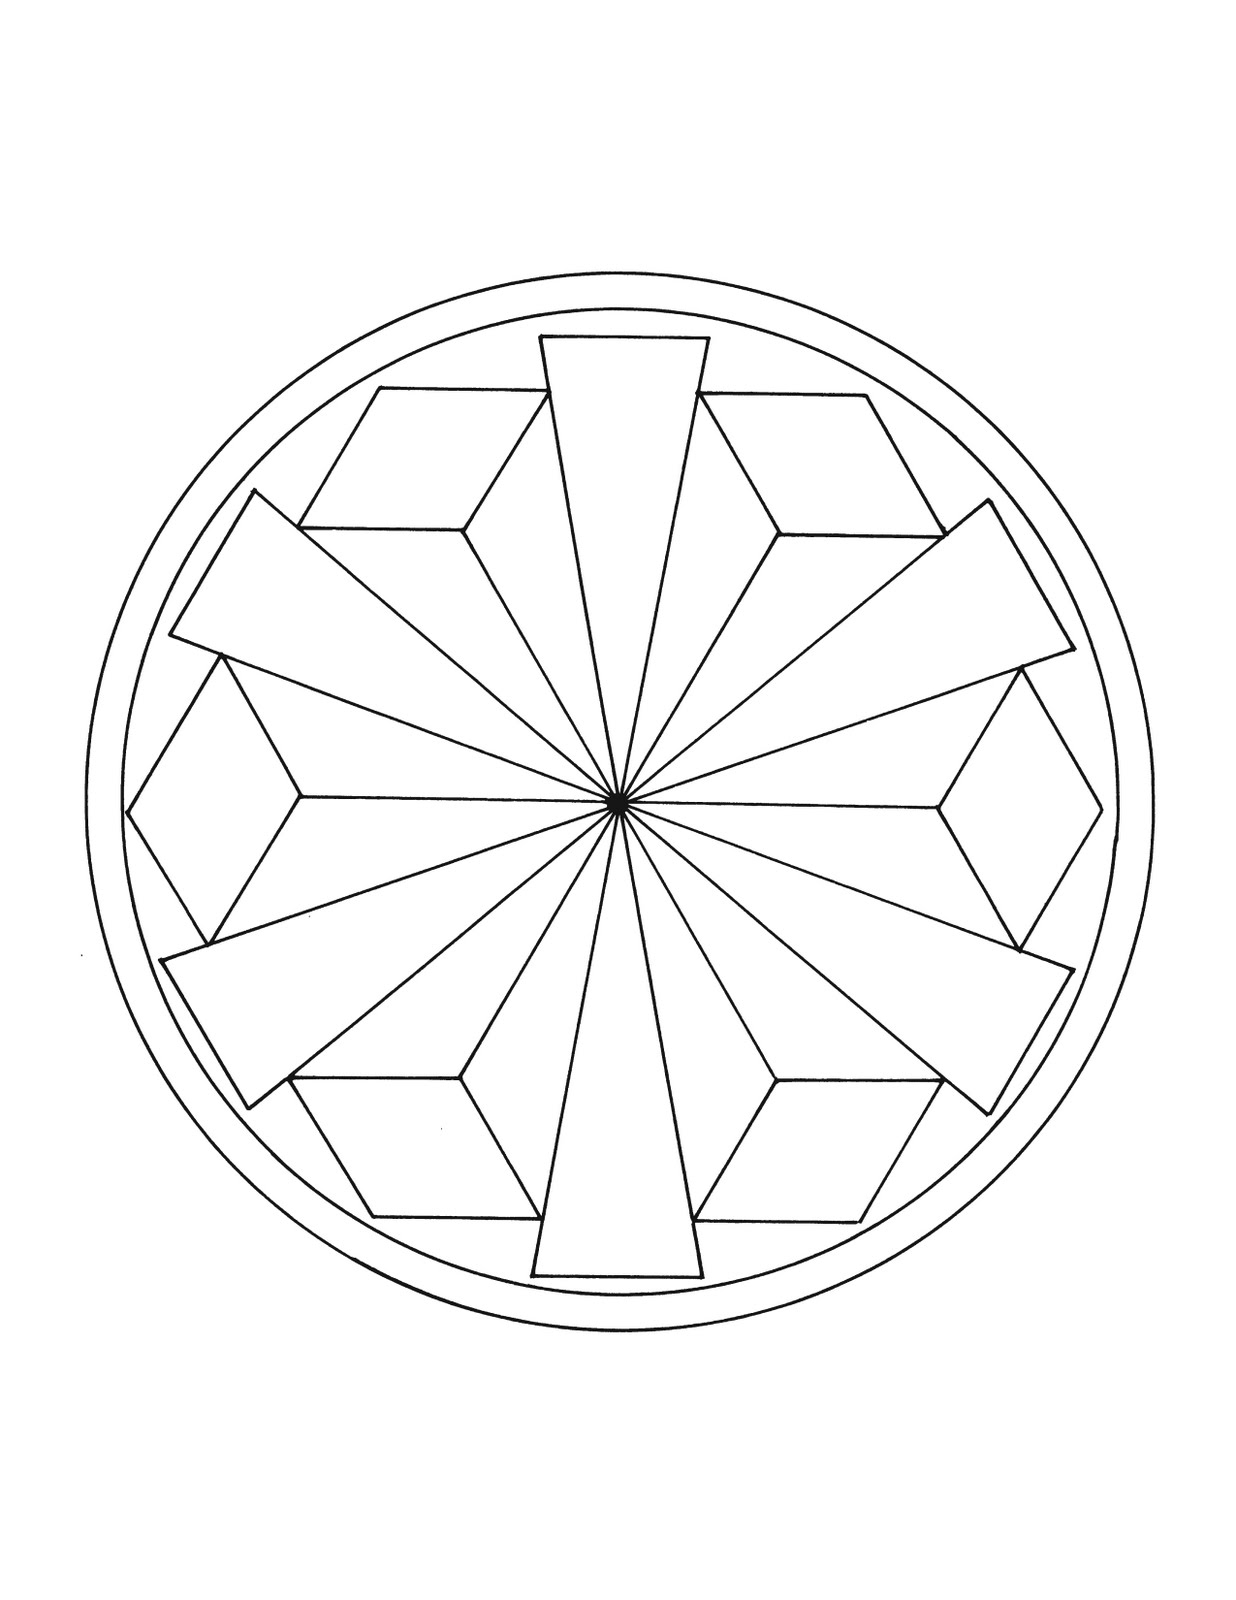 tibetan mandala coloring pages - photo#26